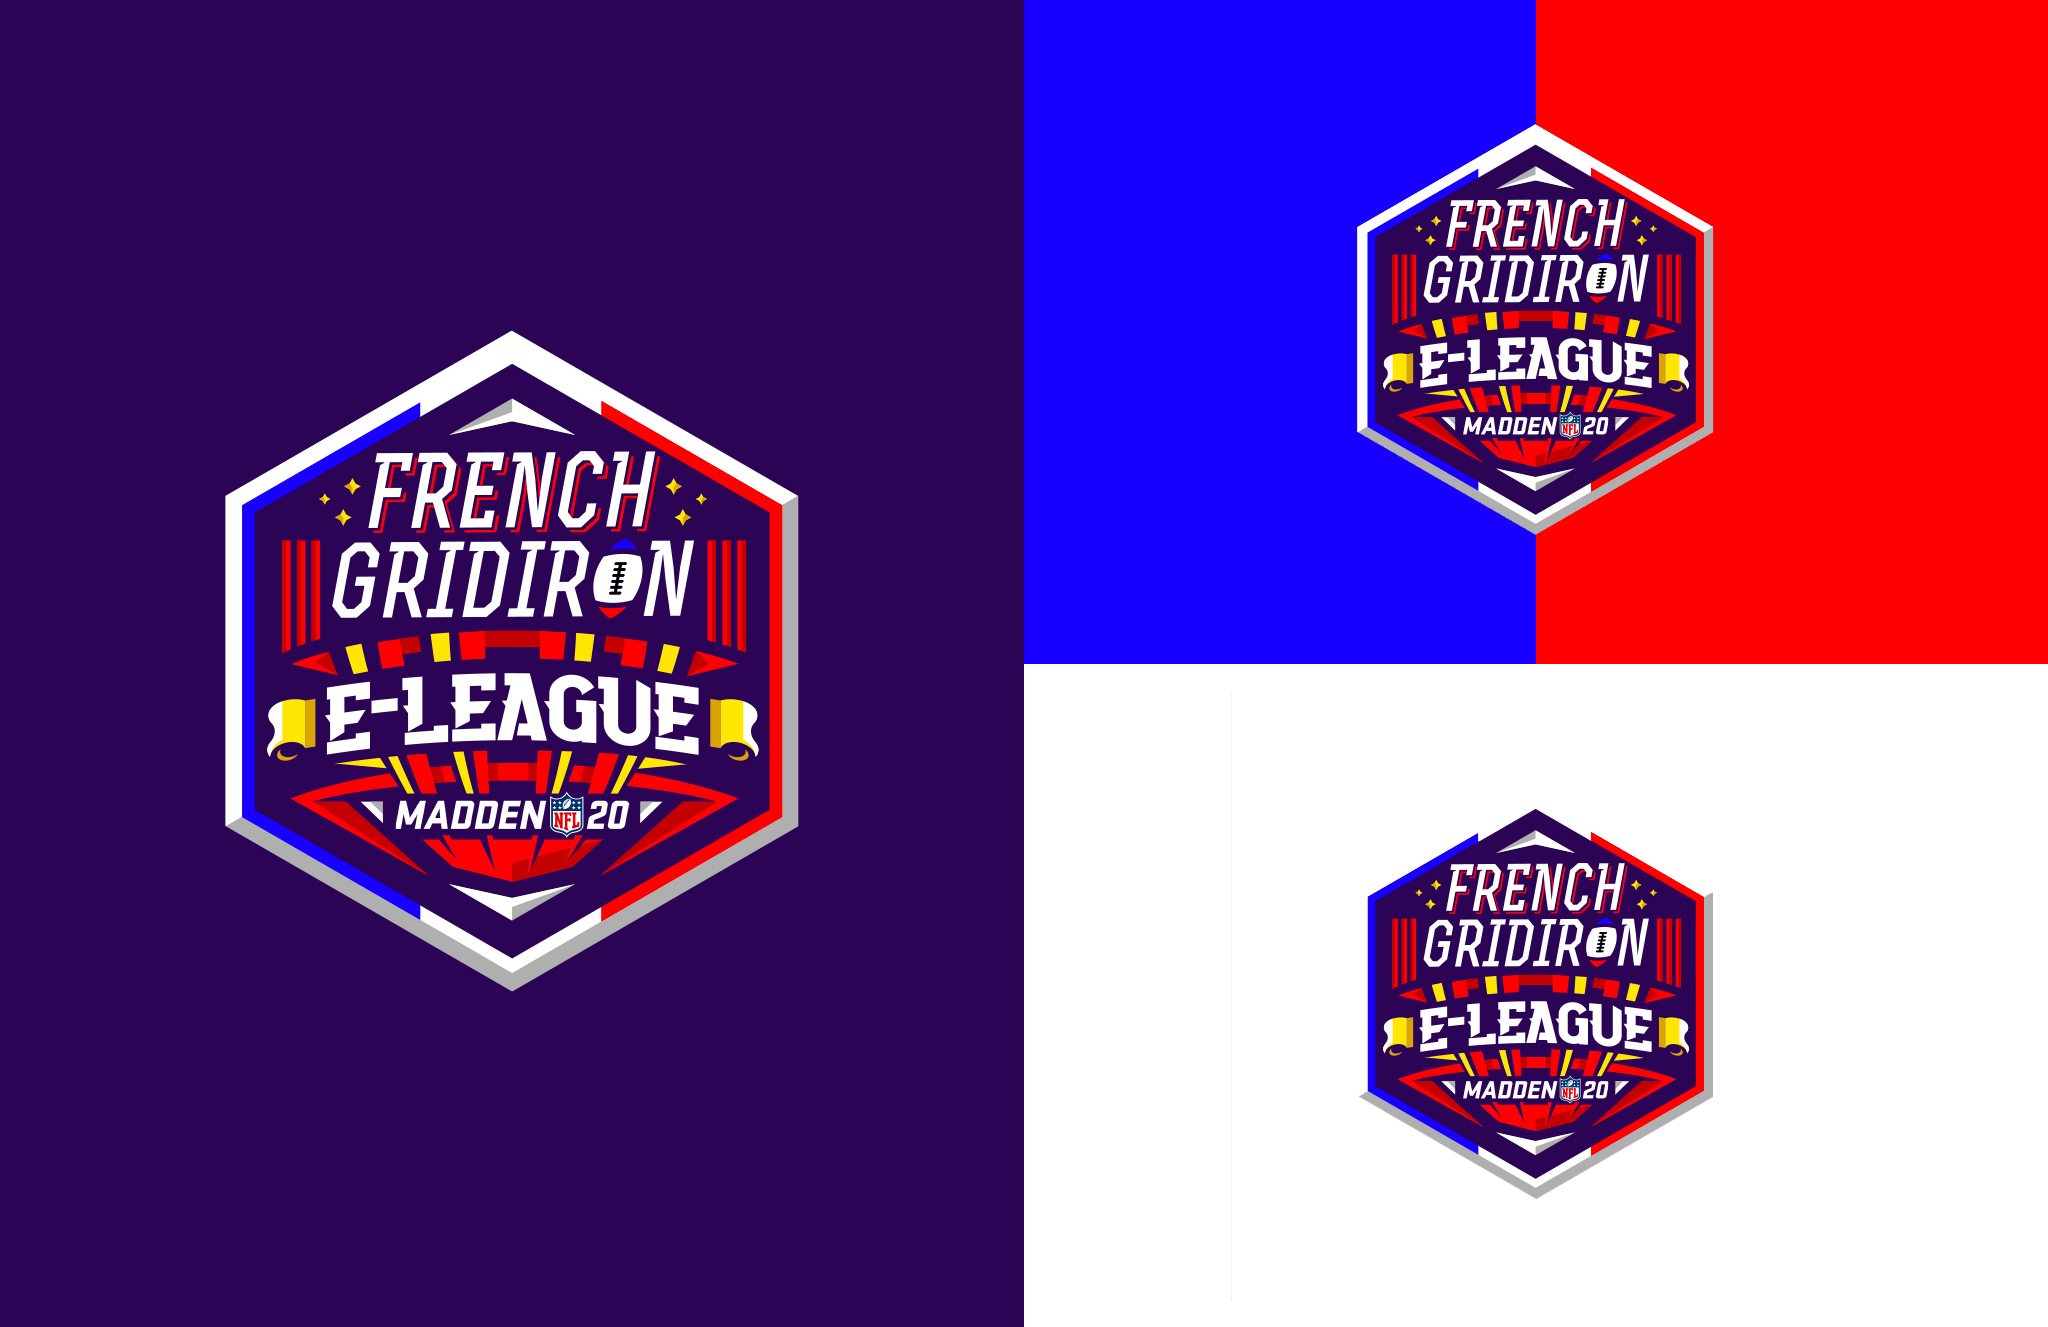 FFFA-French-Gridiron-ELeague-logo